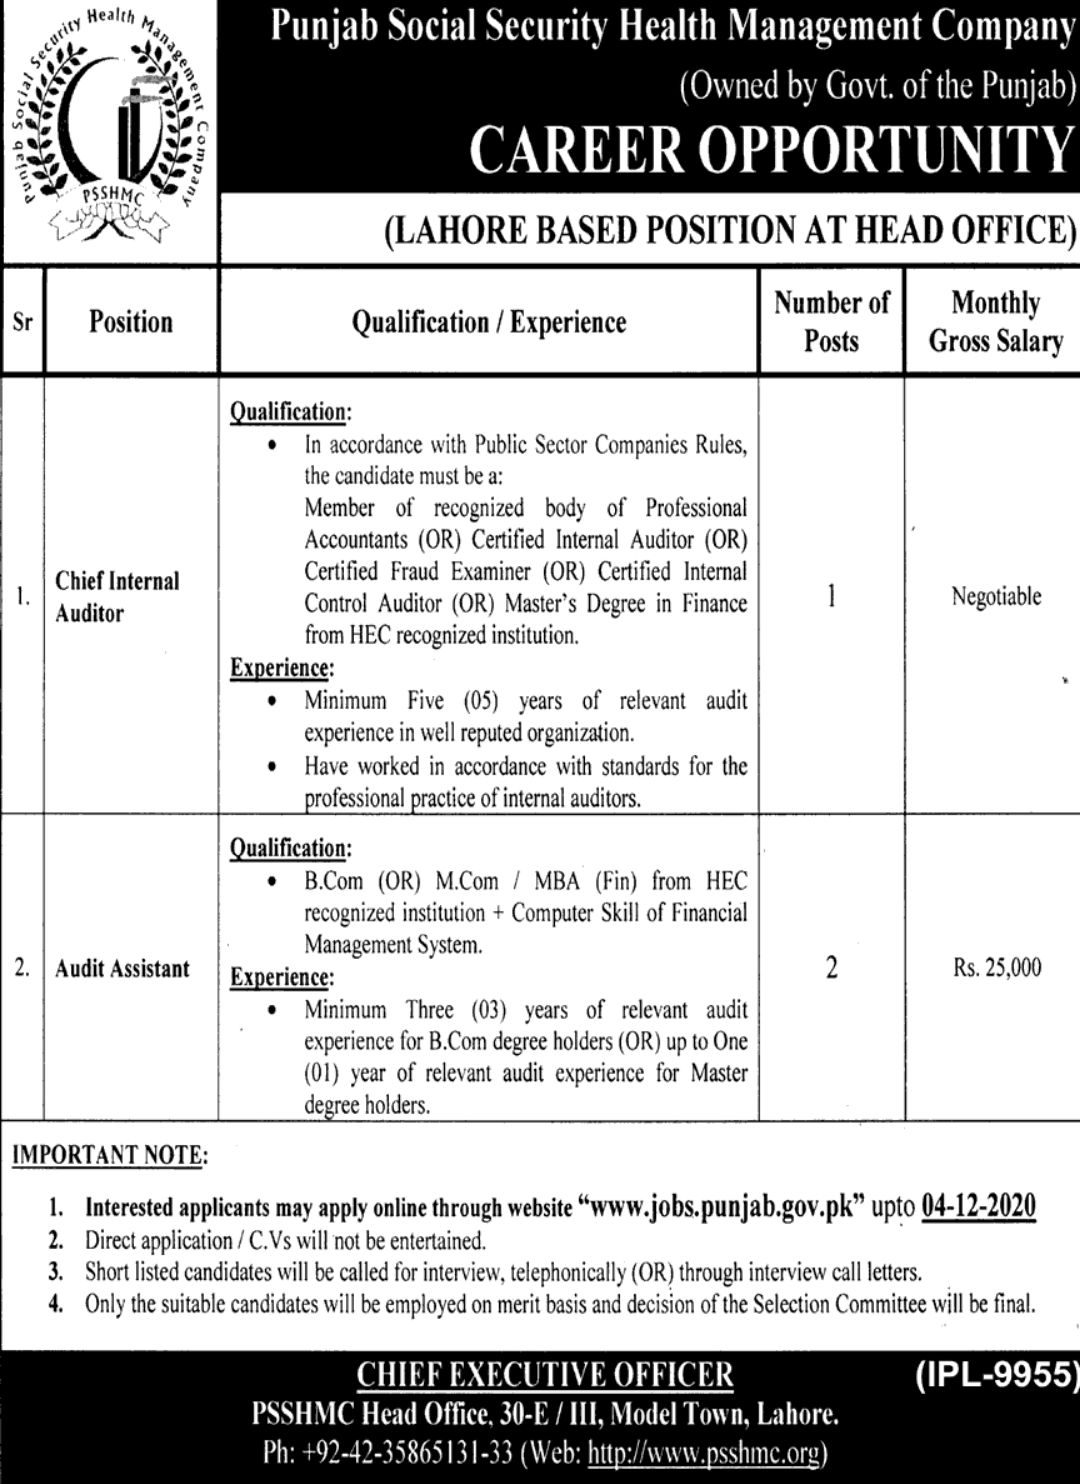 Jobs in Punjab Social Security Health Management Company Lahore 2020